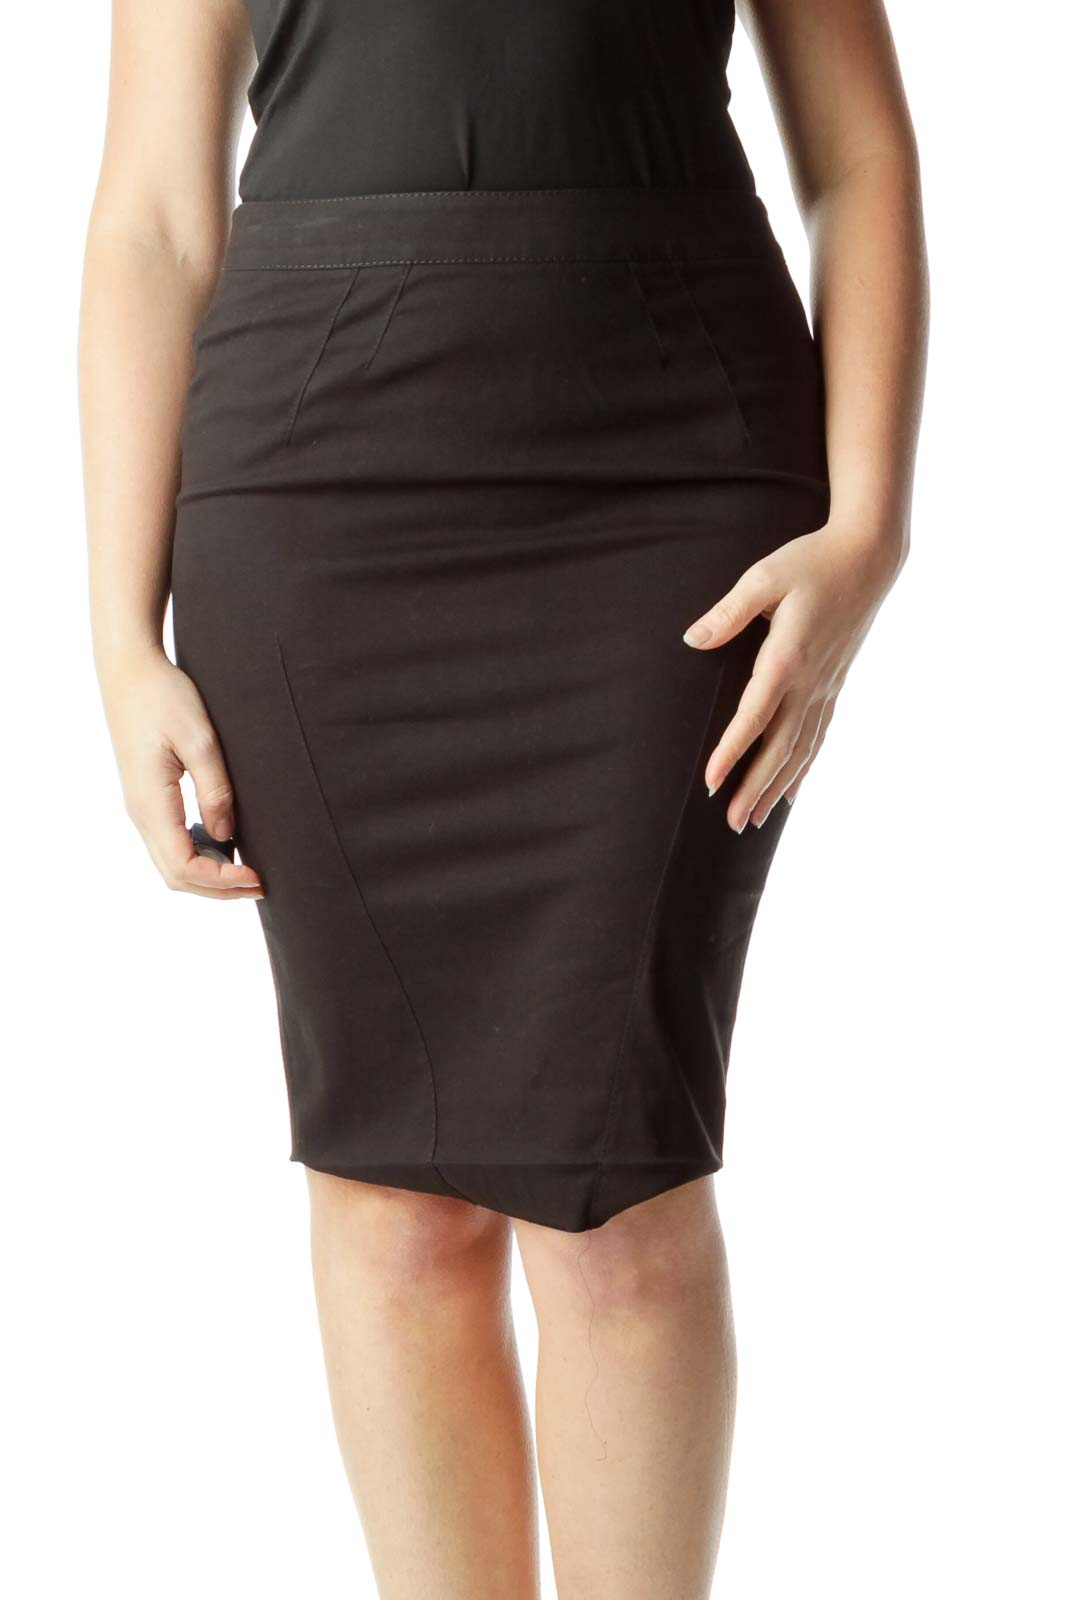 Black Stitched Pencil Skirt with Slit